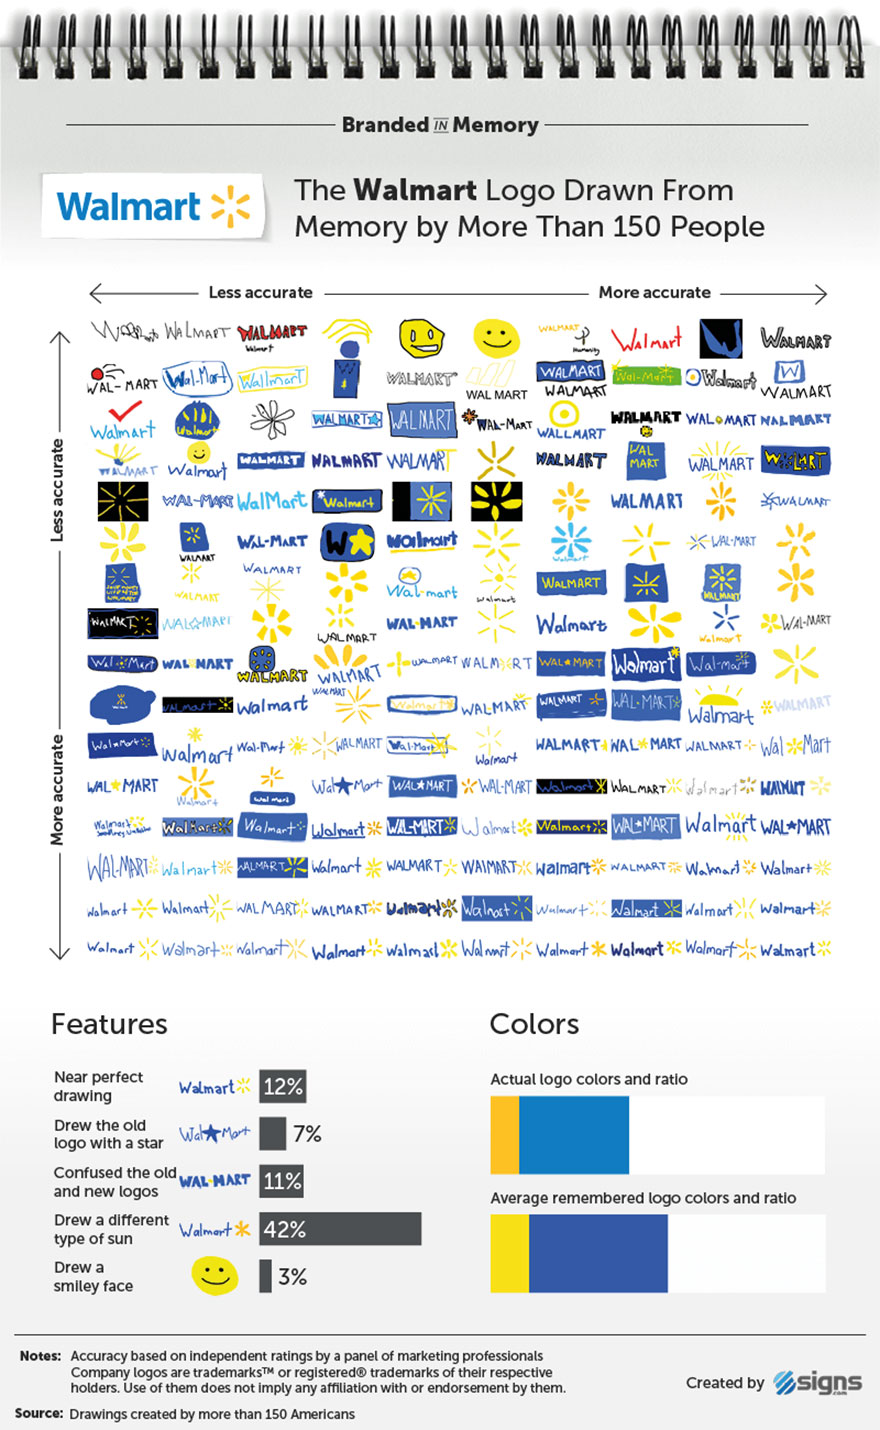 famous-brand-logos-drawn-from-memory-27-